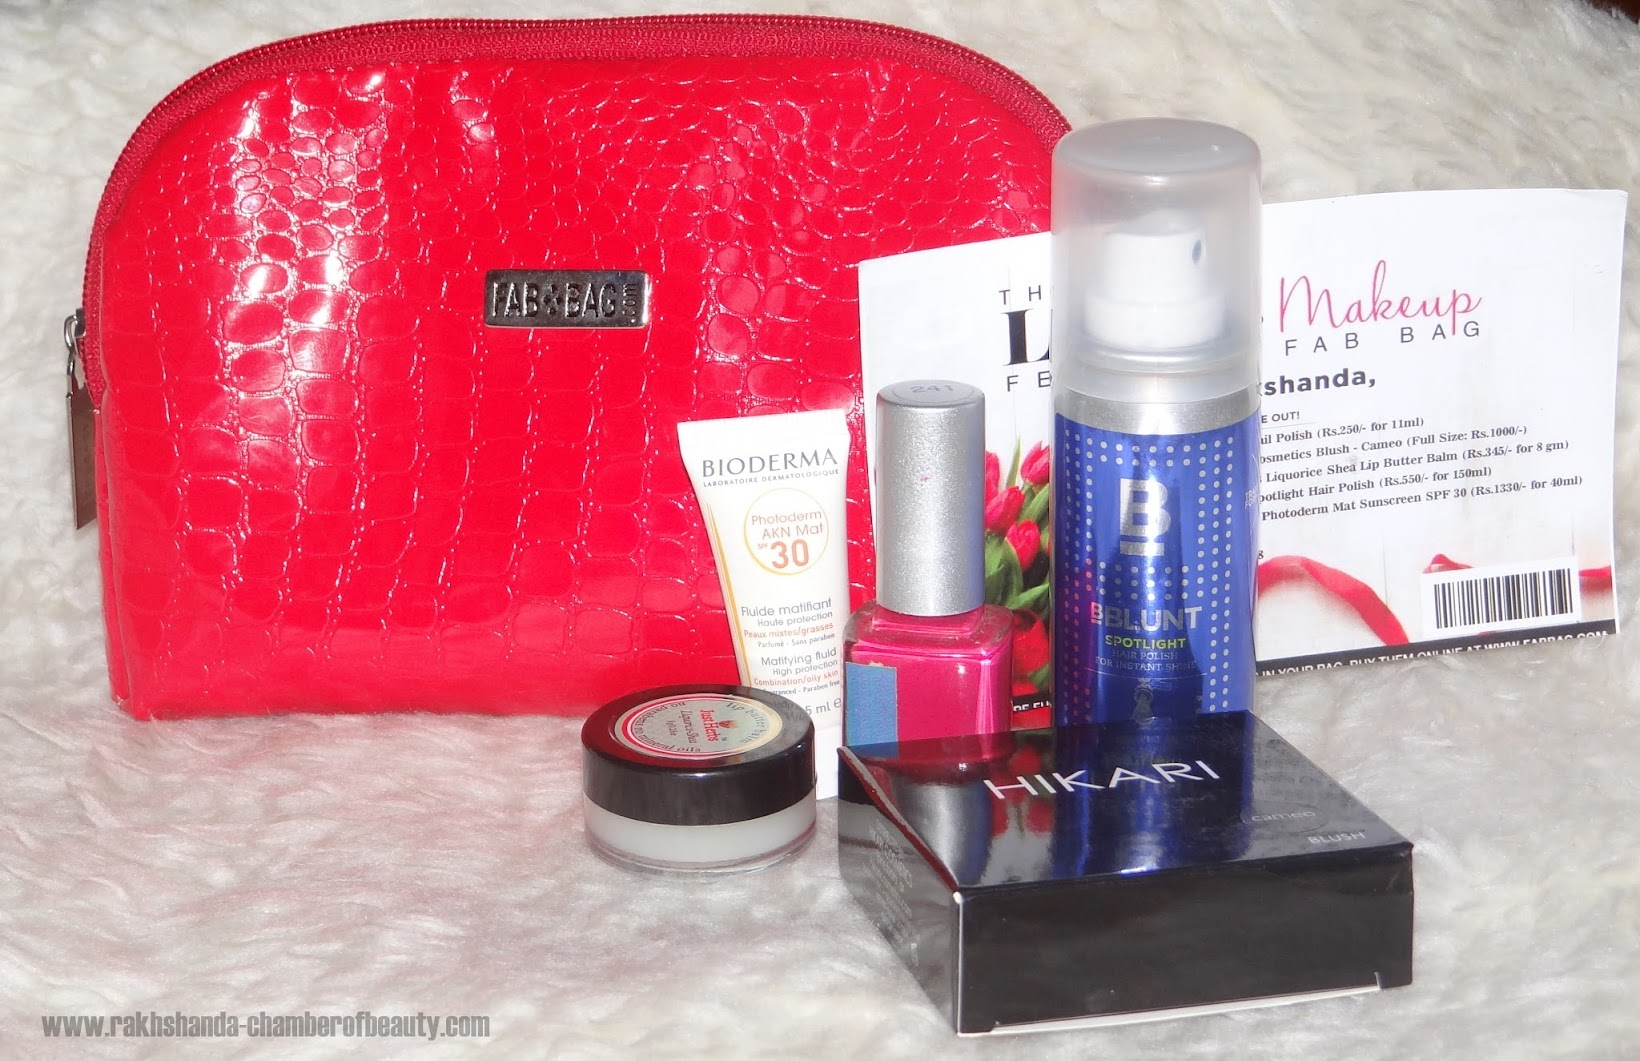 Fab Bag Unboxing, Fab Bag February 2016 Review & Photos